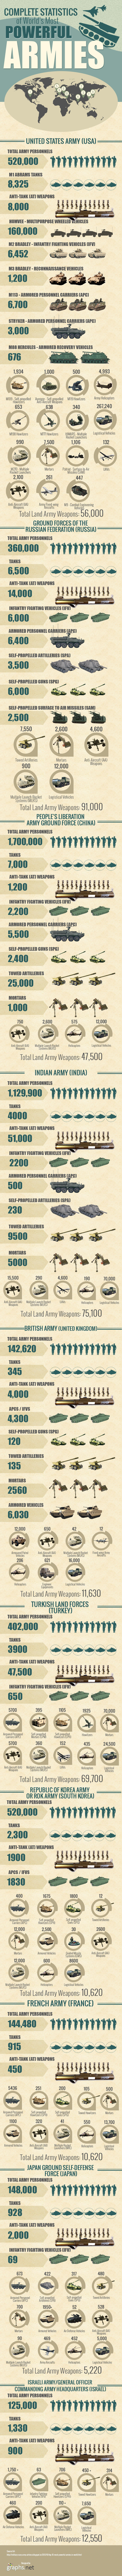 Statistics of World's Most Powerful Armies